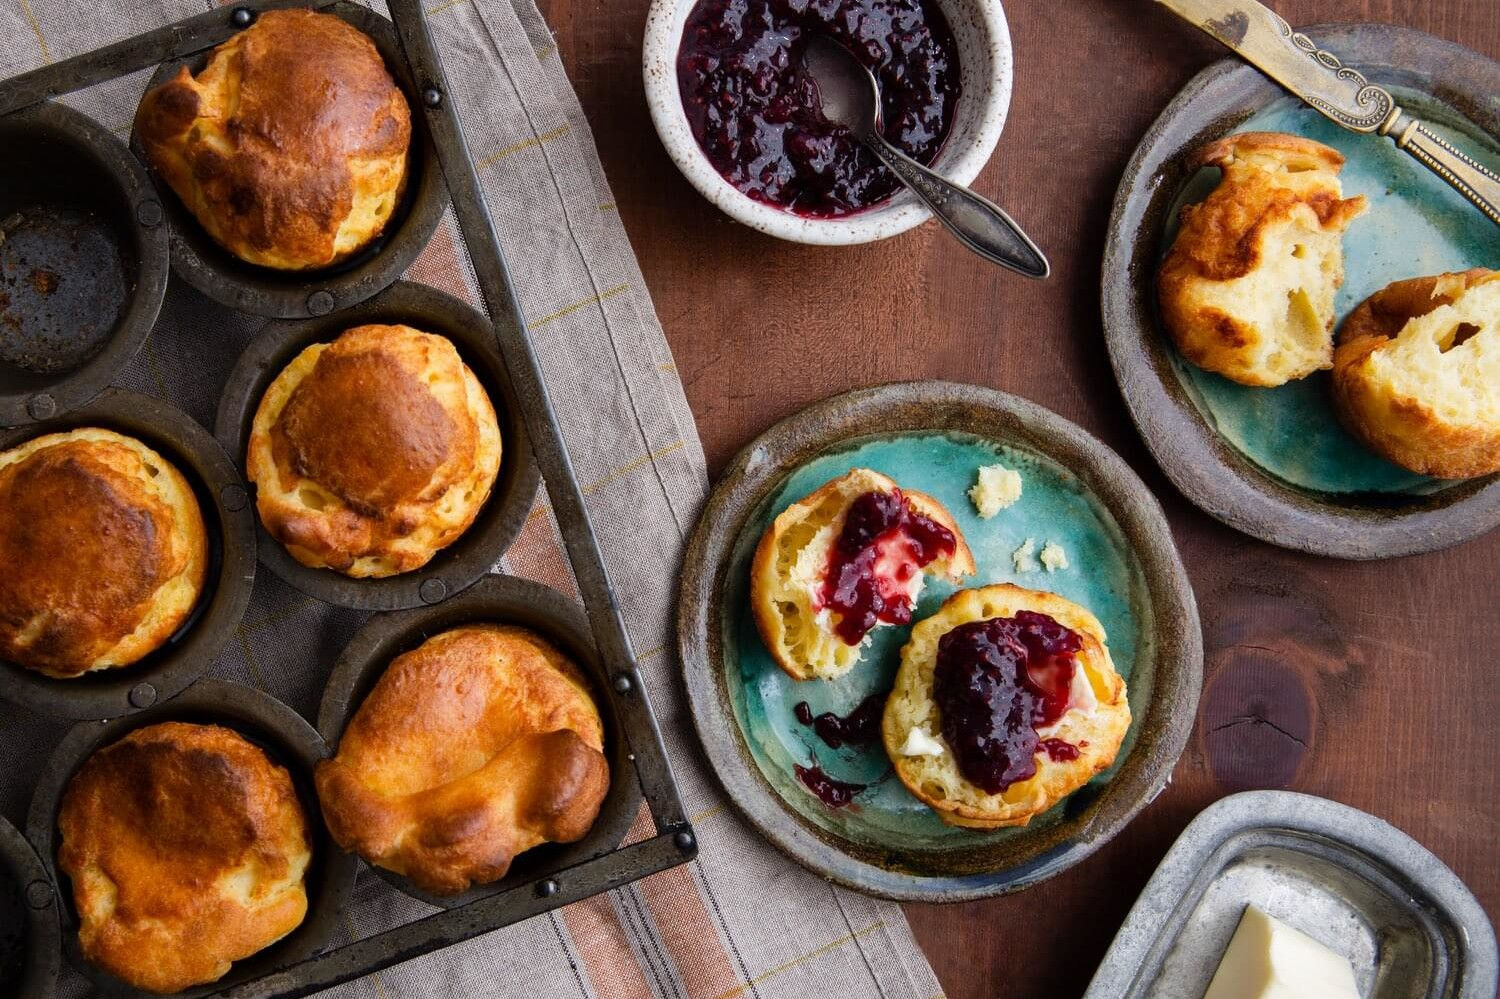 These popovers are airy on the inside and crispy on the outside. They are cooked until golden brown and topped with Nellie's Butter or preserves. | peteandgerrys.com